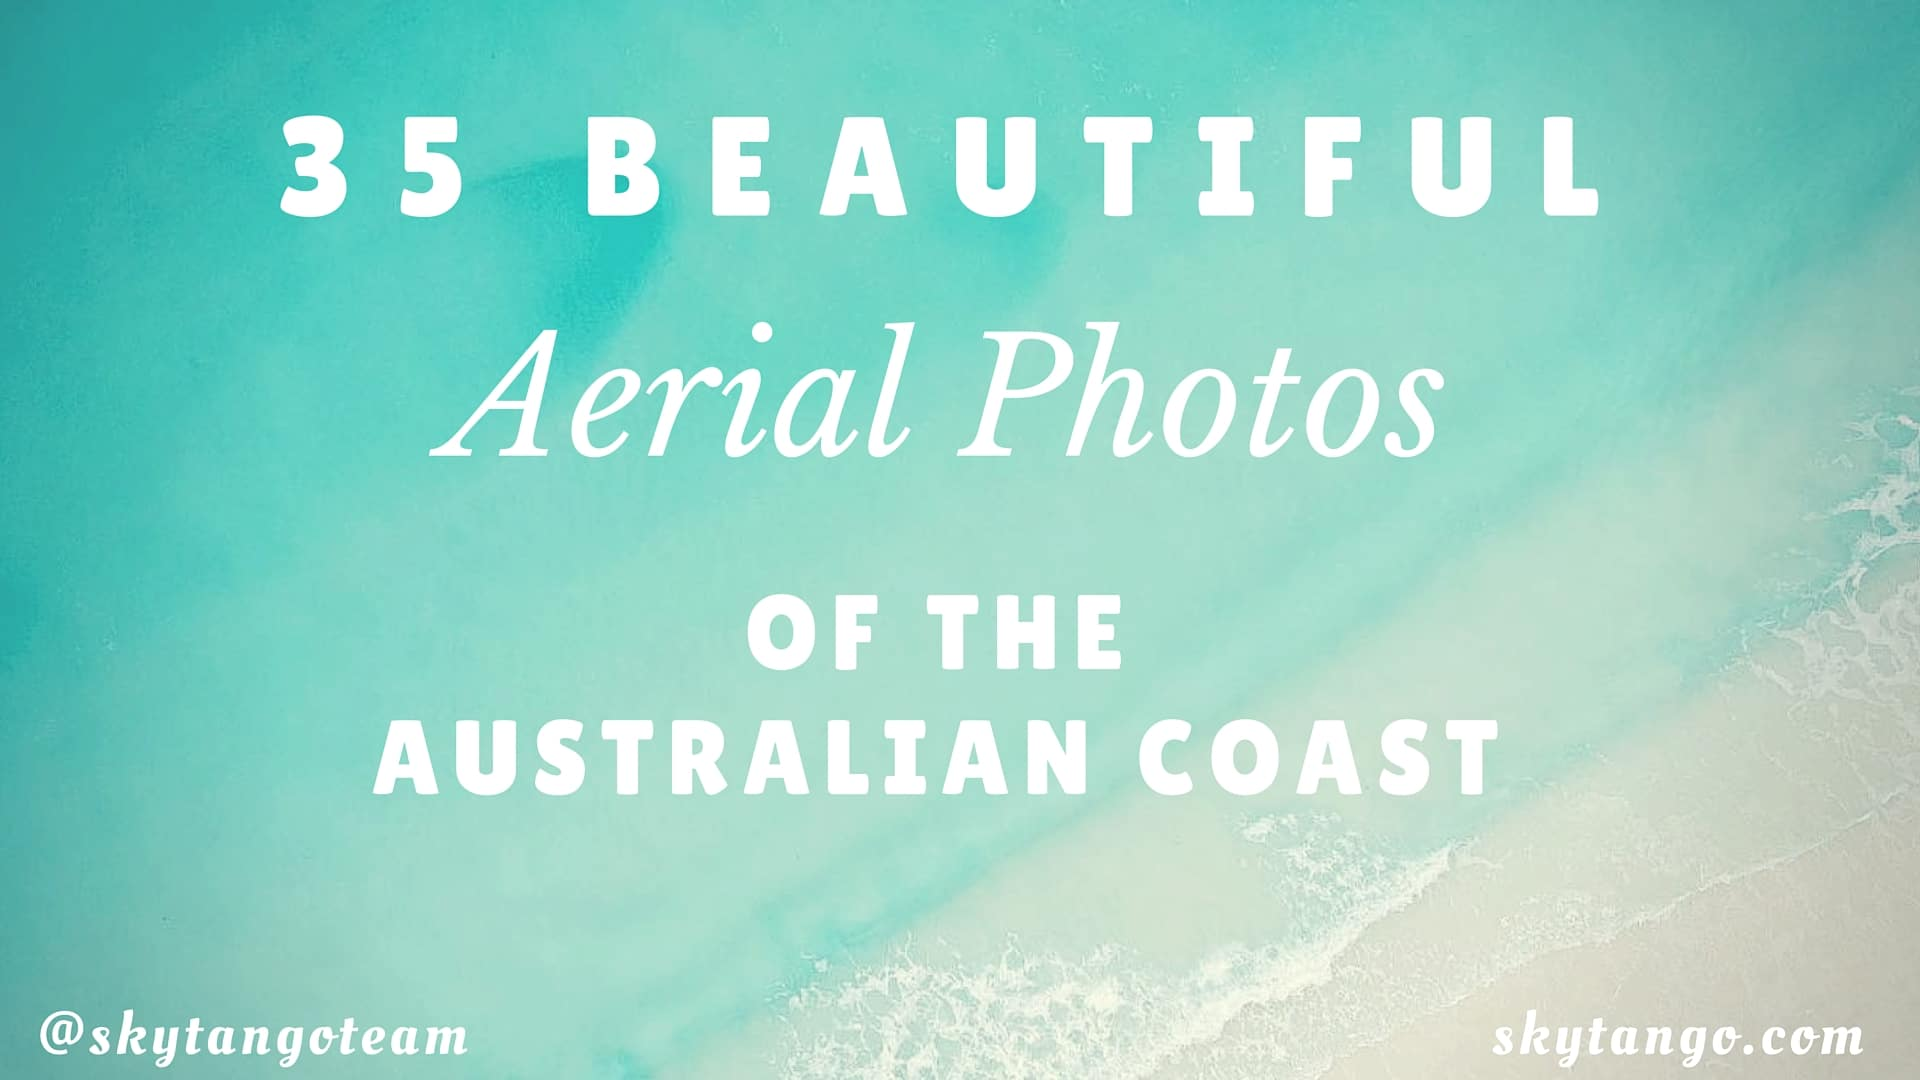 35 Beautiful Aerial Photos Of The Australian Coast